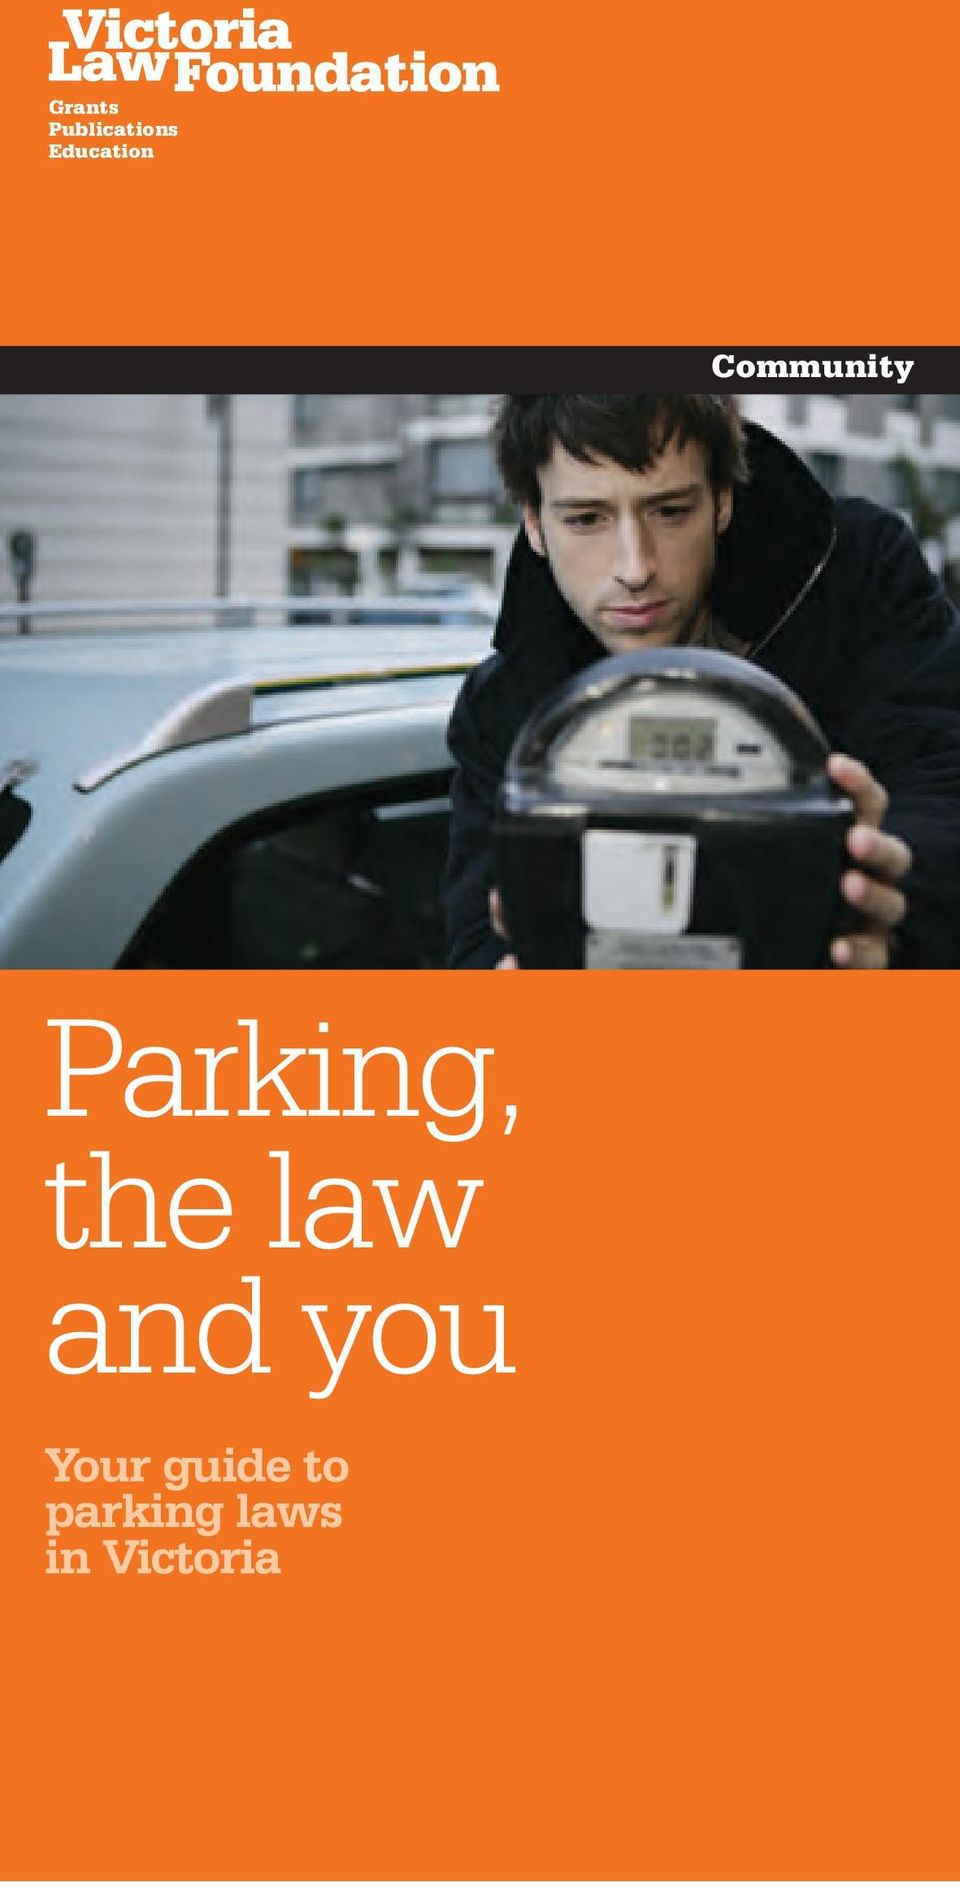 Parking, the law and you